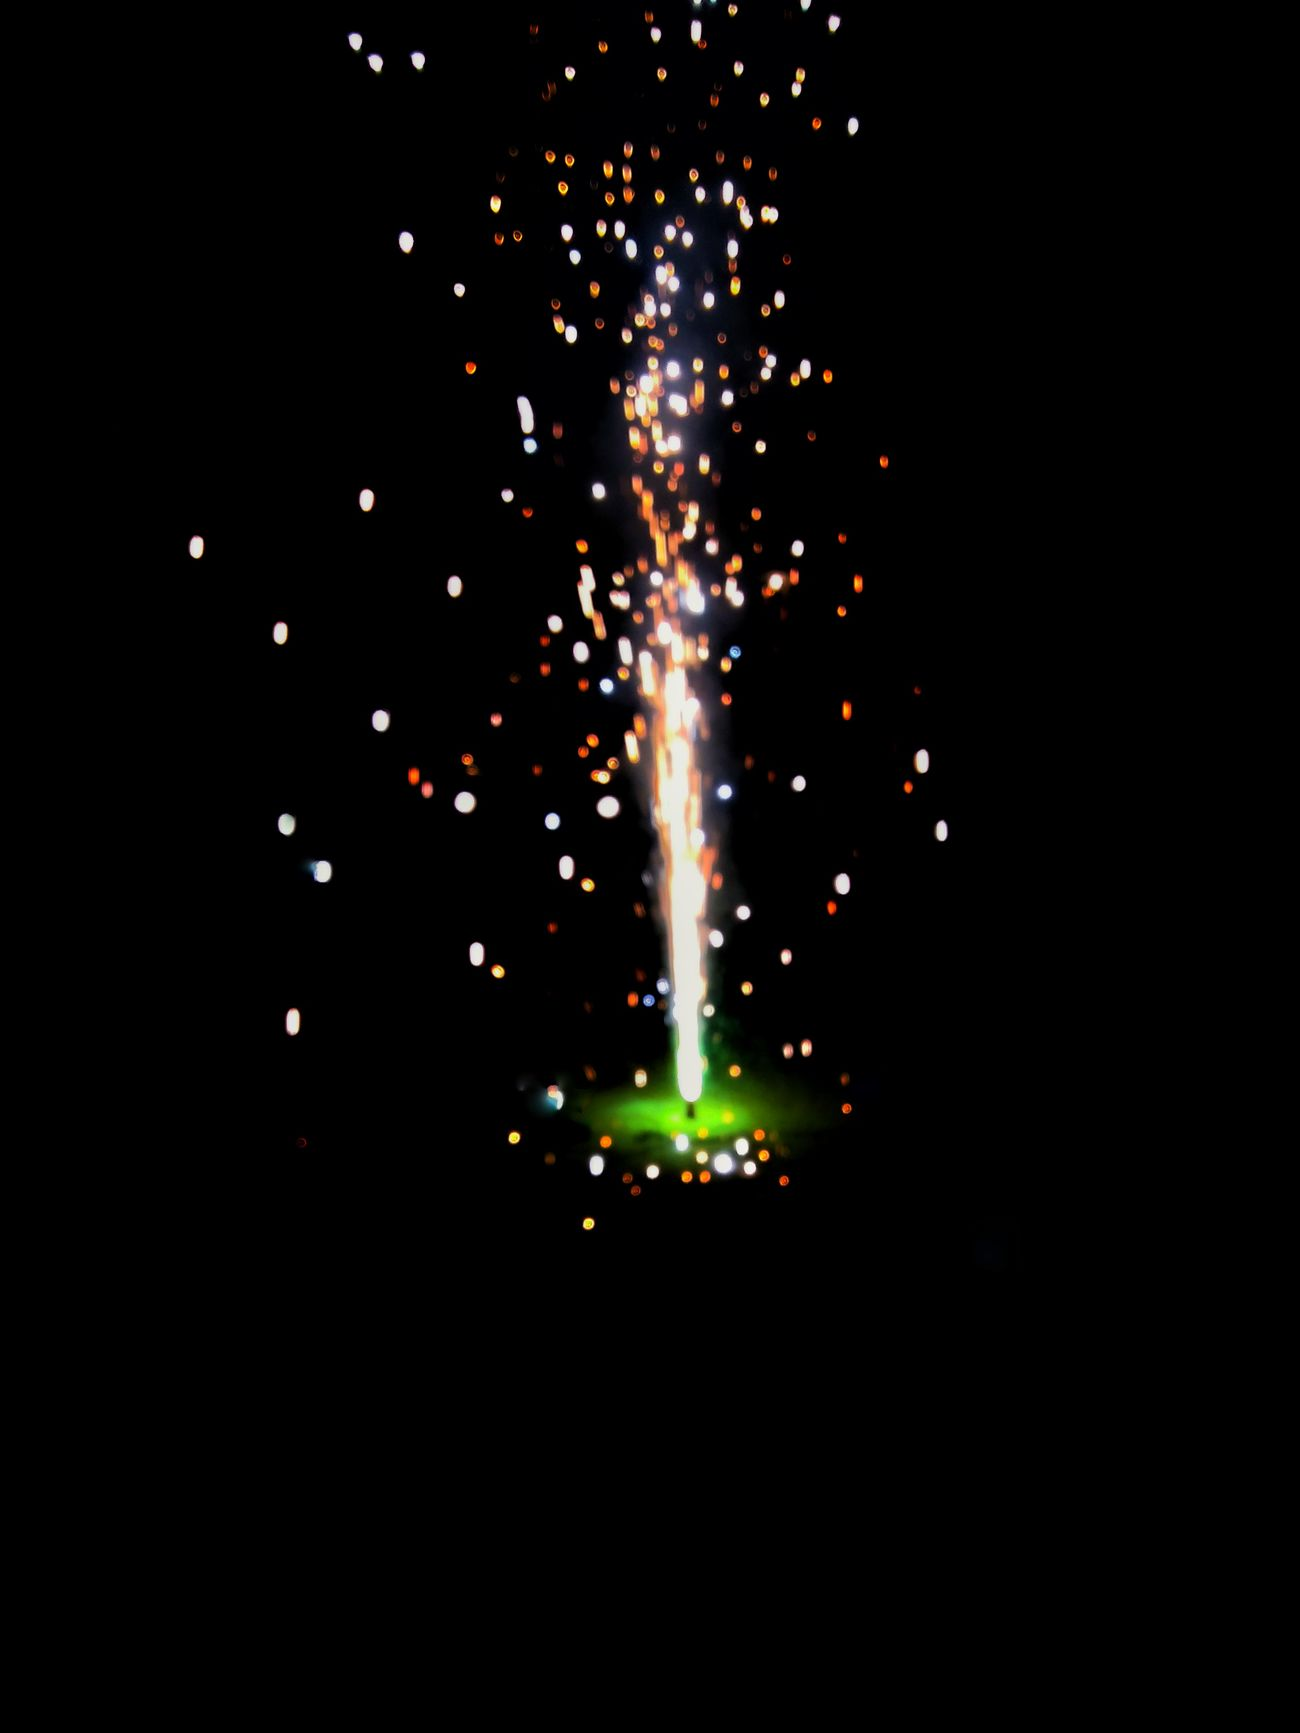 Illuminating the dark world Motion Celebration Splashing Exploding Speed Smoke - Physical Structure Black Background Particle Firework - Man Made Object Night Celebration Illuminated Diwali Celebration Diwali💟🎇🎆🌌 Diwalicelebrations Diwali Check This Out Taking Photos Firework Diwali Fireworks Blurred Visions